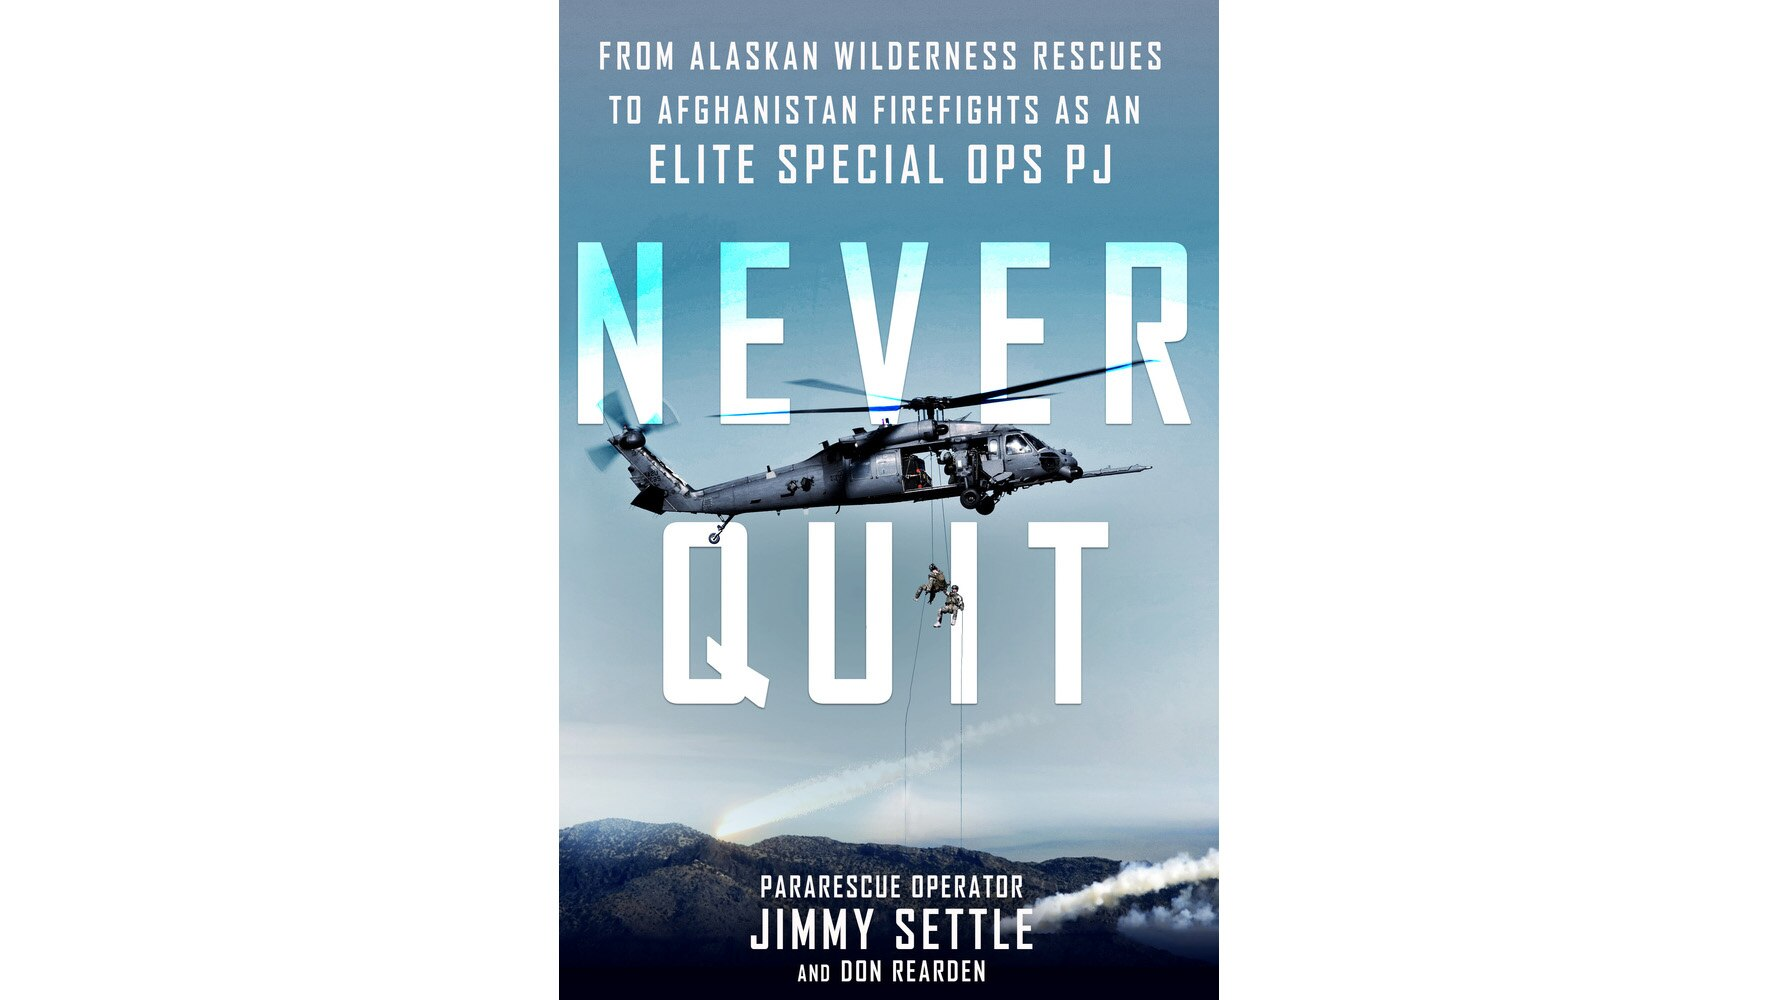 Spring 2017 book review -- Never Quit: From Alaskan Wilderness Rescues to Afghanistan Firefights as an Elite Special Ops PJ